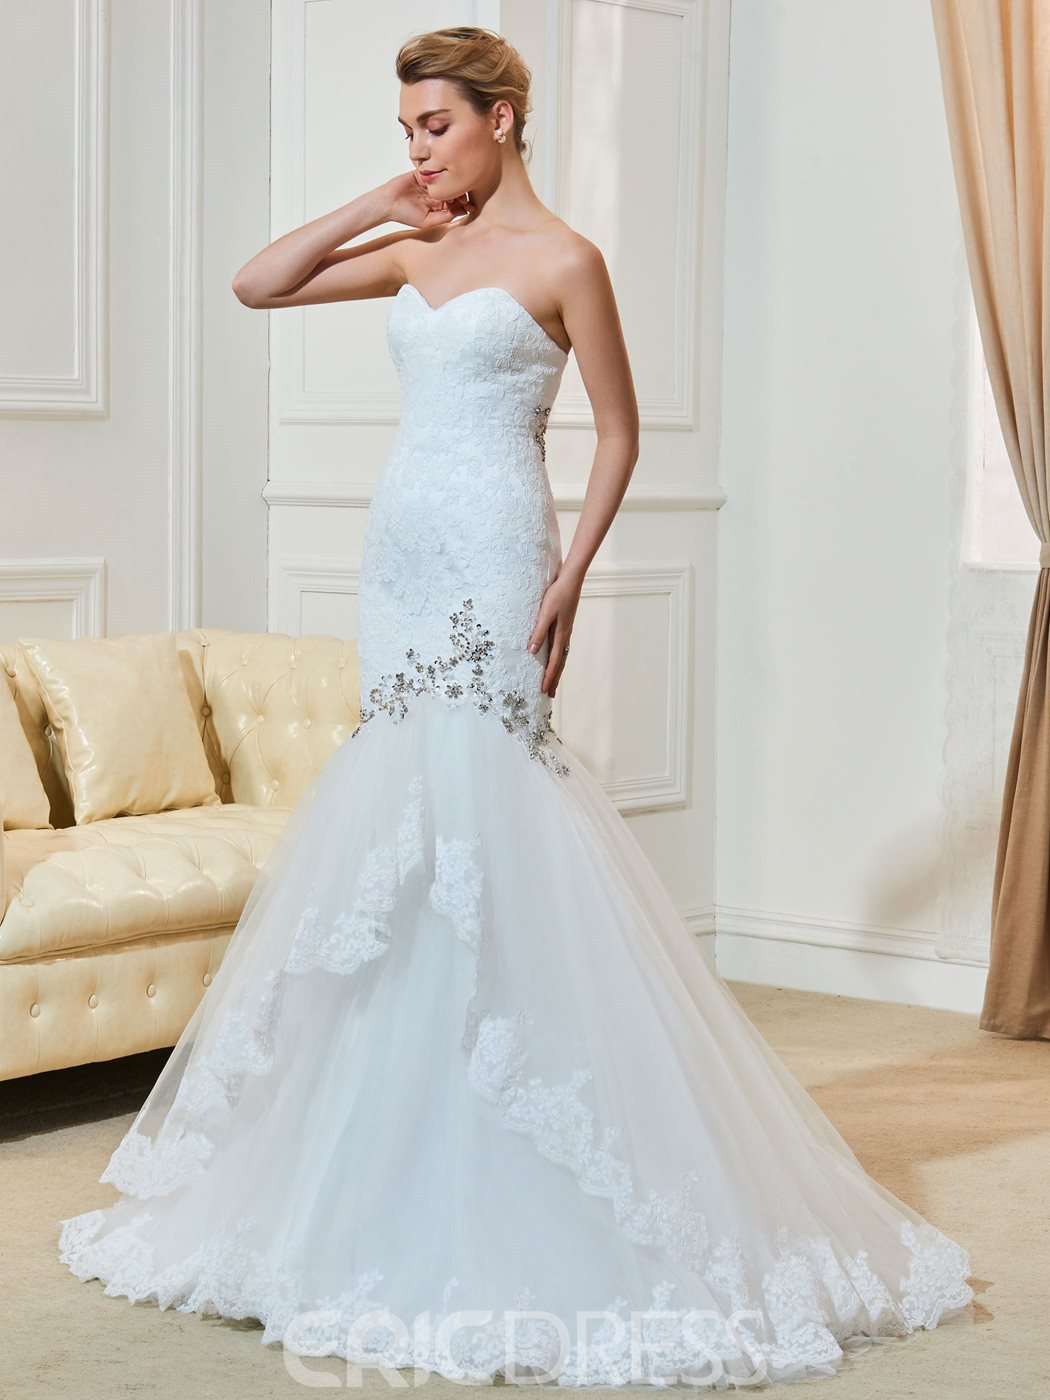 Ericdress Charming Beaded Sweetheart Lace Mermaid Wedding Dress